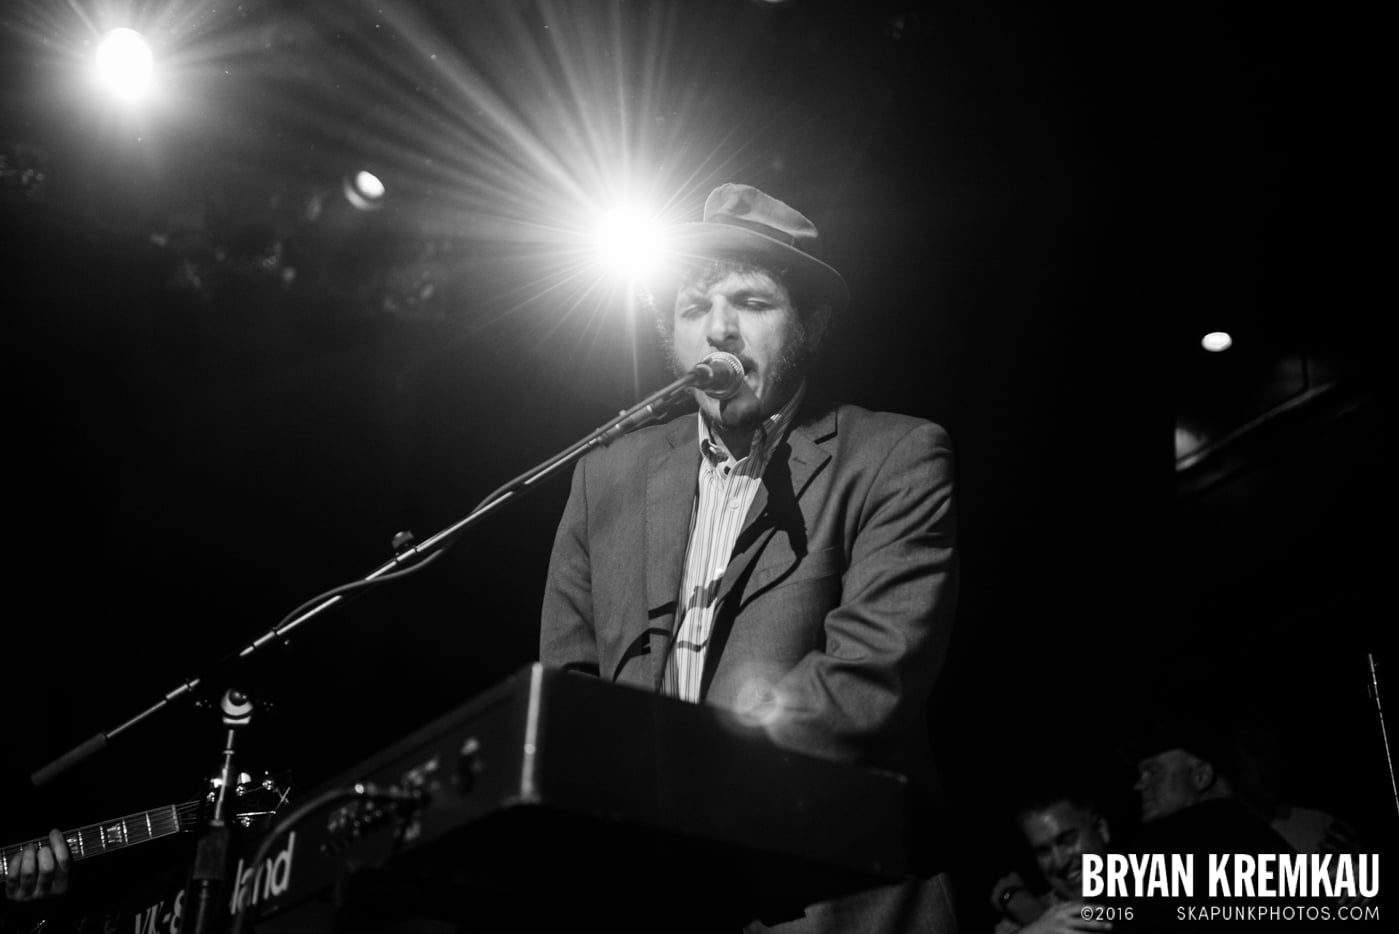 The Slackers @ Apple Stomp: Day 2, Irving Plaza, NYC - June 1st 2013 - Bryan Kremkau (21)